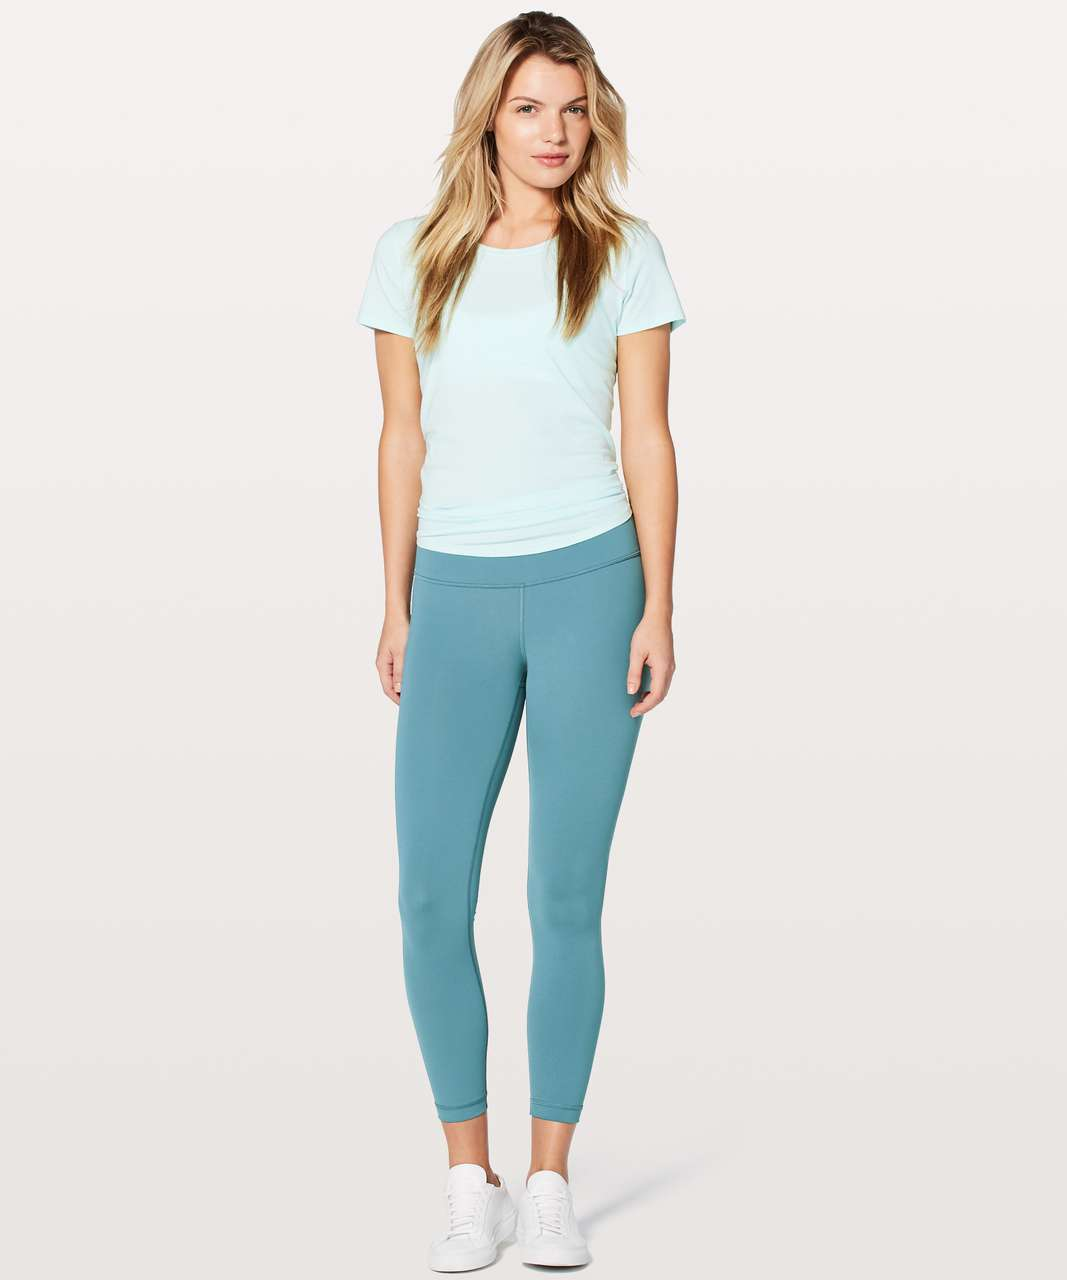 "Lululemon Wunder Under Hi-Rise 7/8 Tight *Full-On Luxtreme 25"" - Persian Blue"